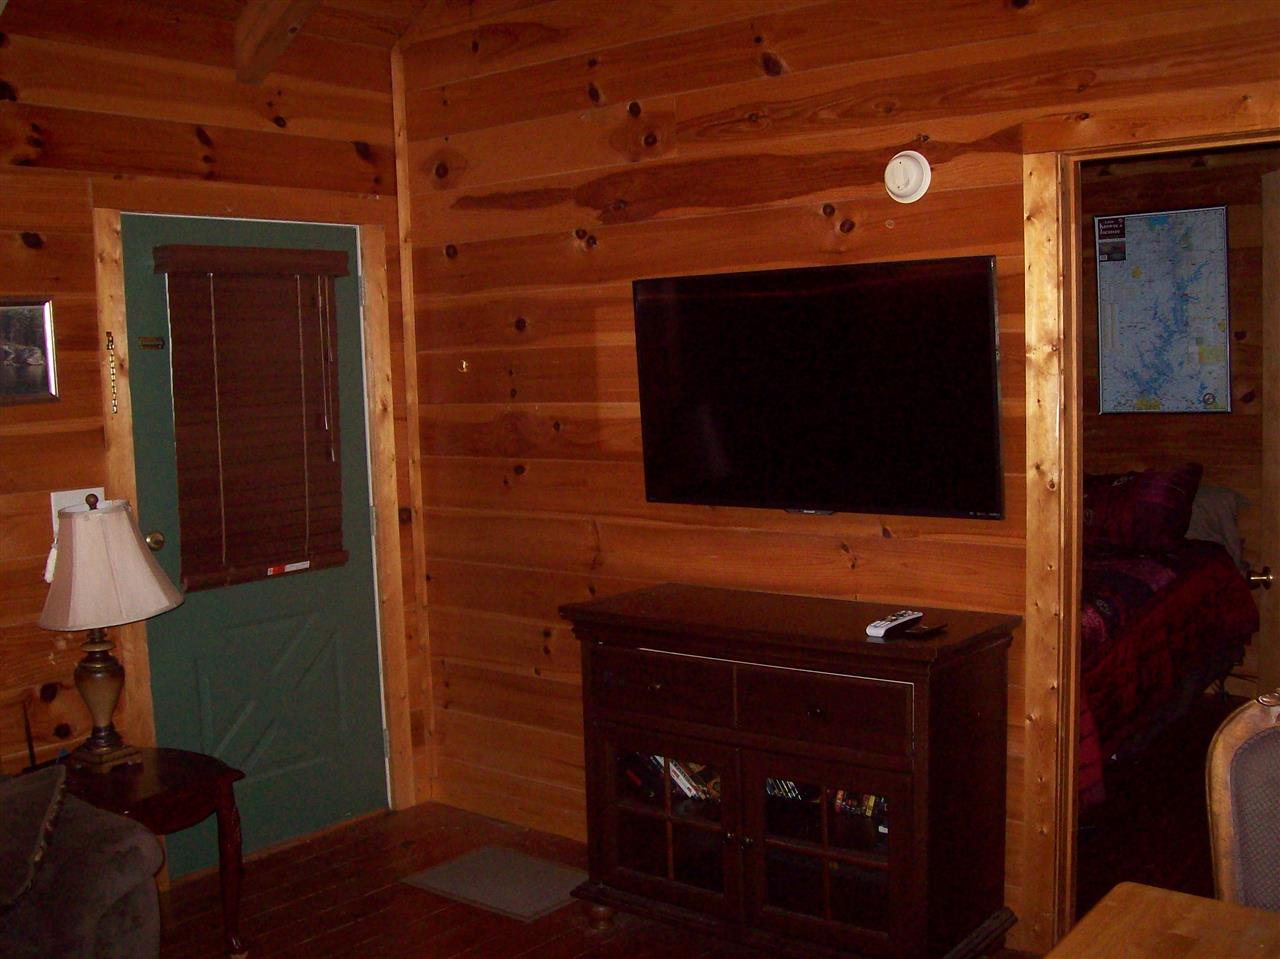 cabins south or in river walhalla chattooga lm lake back carolina property rentals to hartwell waterfront clemson keowee jocassee wuarsc cabin